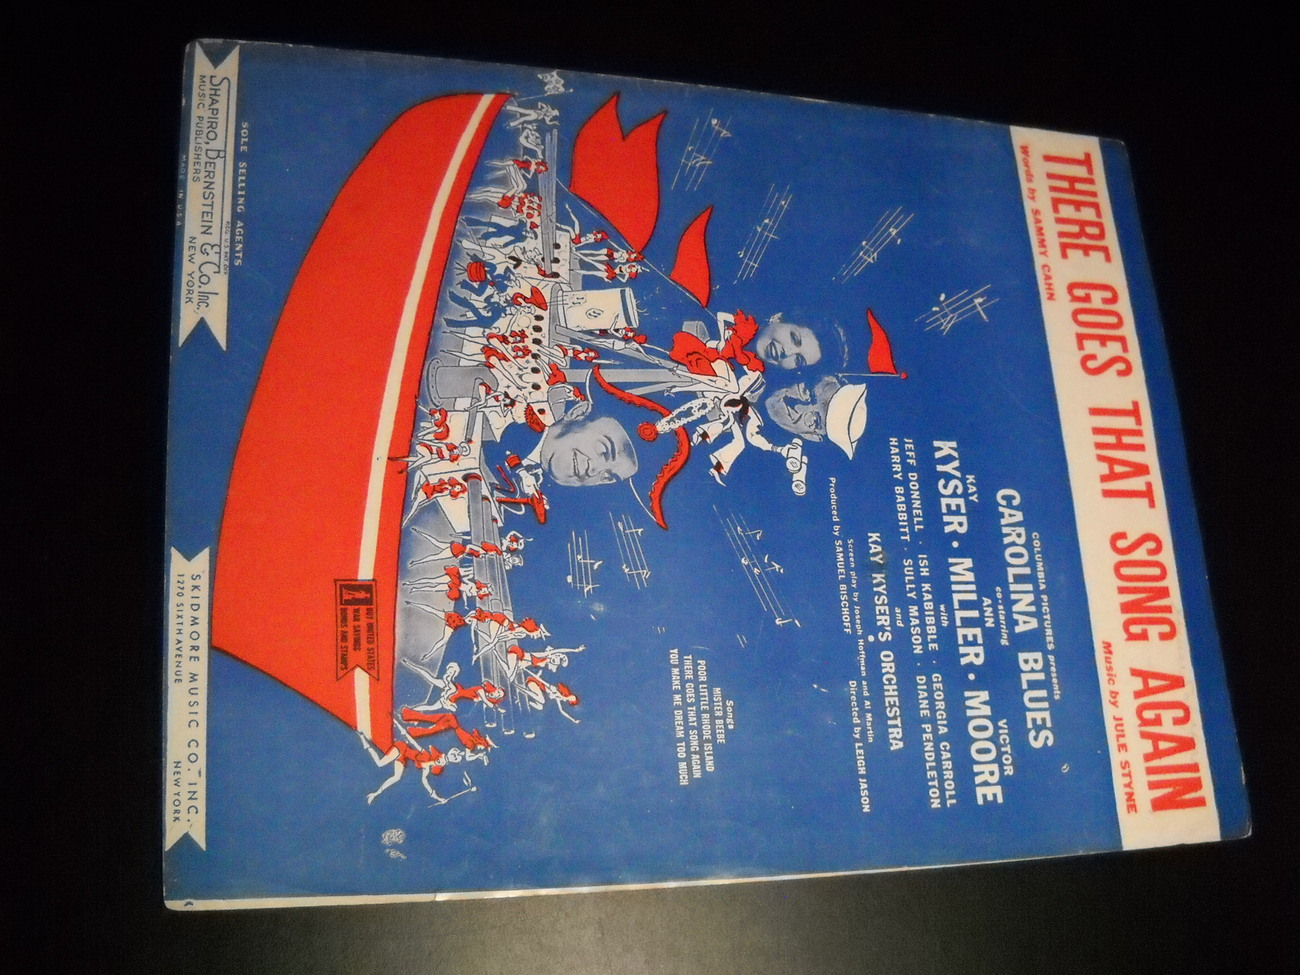 Sheet Music There Goes That Song Again from Carolina Blues 1944 Kay Kyser Miller